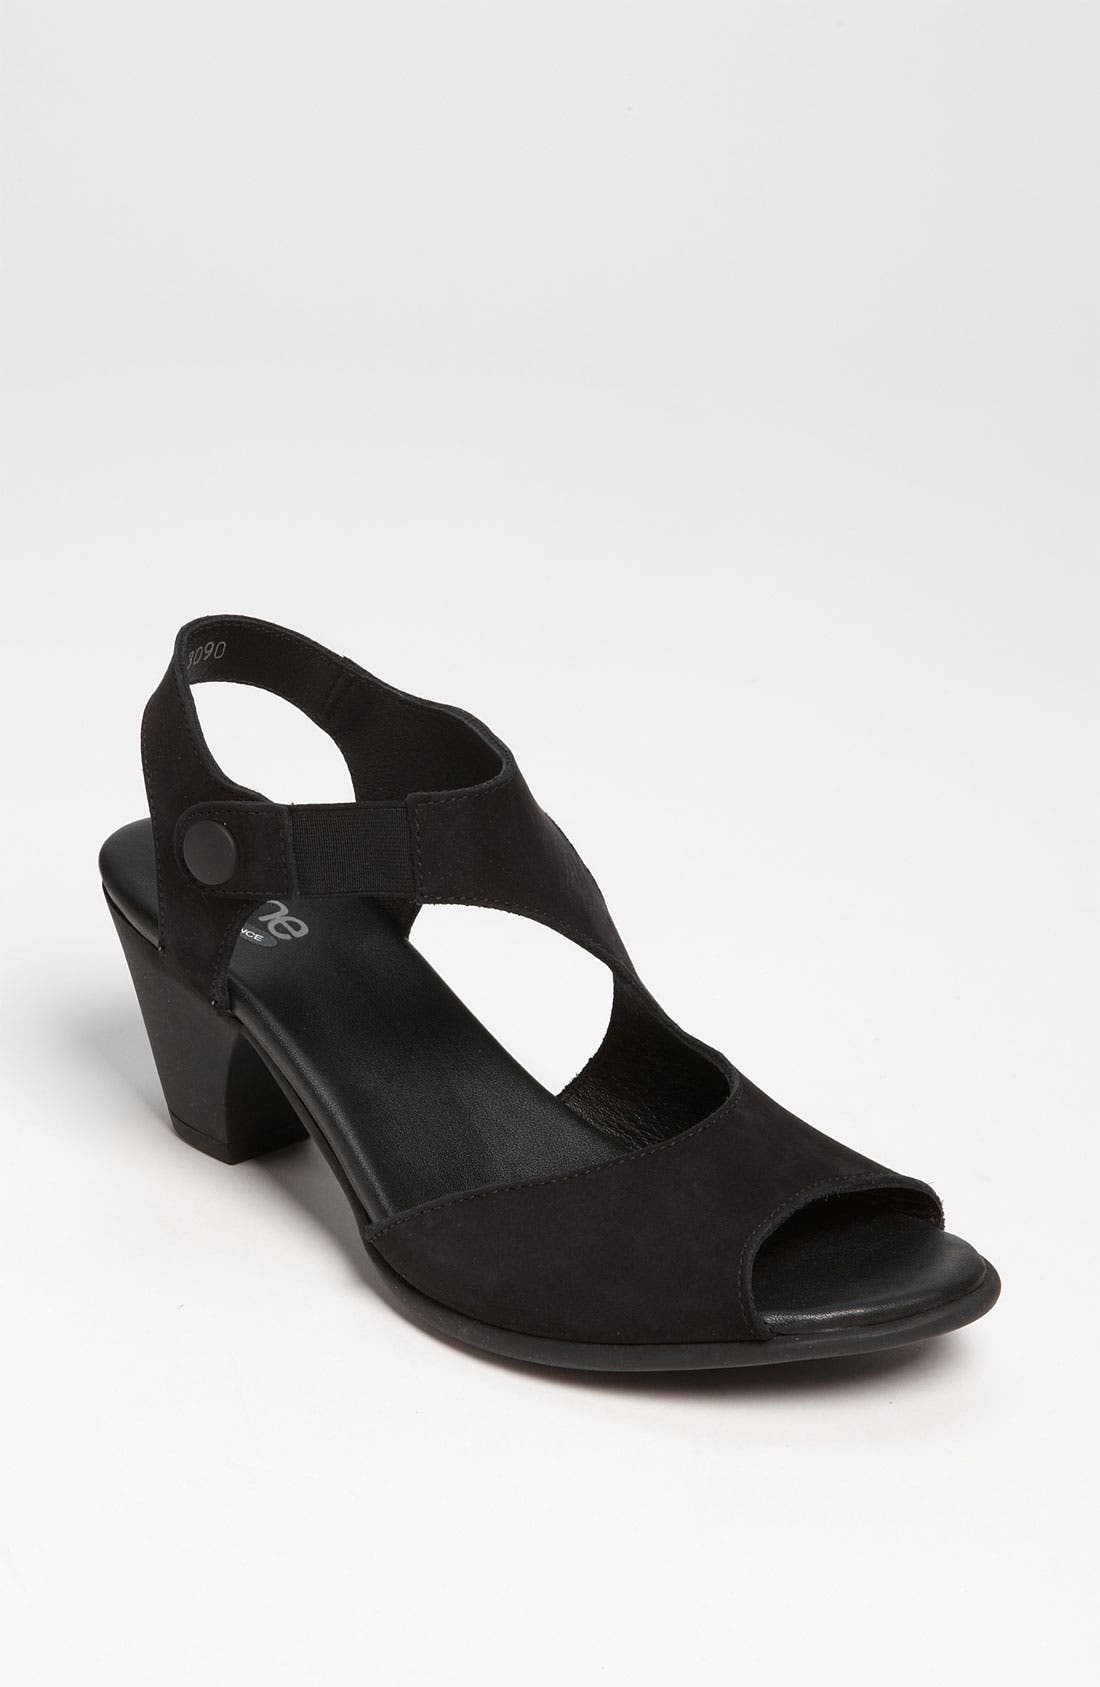 Alternate Image 1 Selected - Arche 'Mityal' Sandal